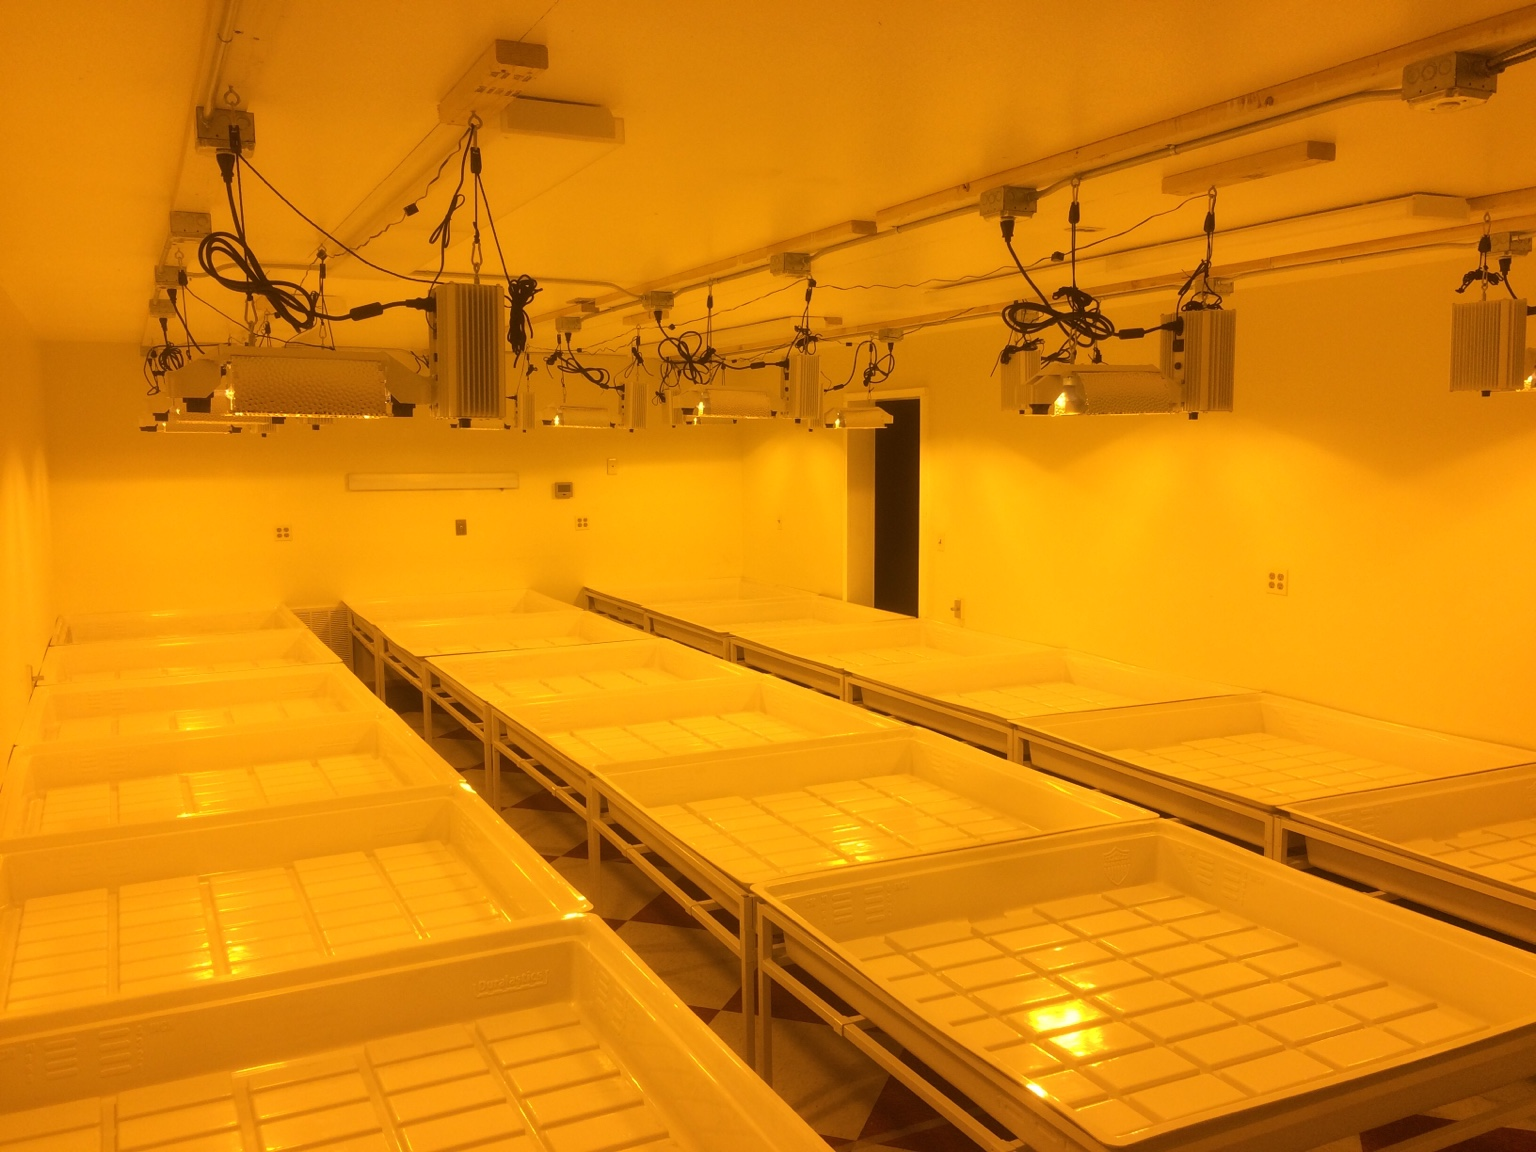 commercial grow room build out just waiting on license pics. Black Bedroom Furniture Sets. Home Design Ideas